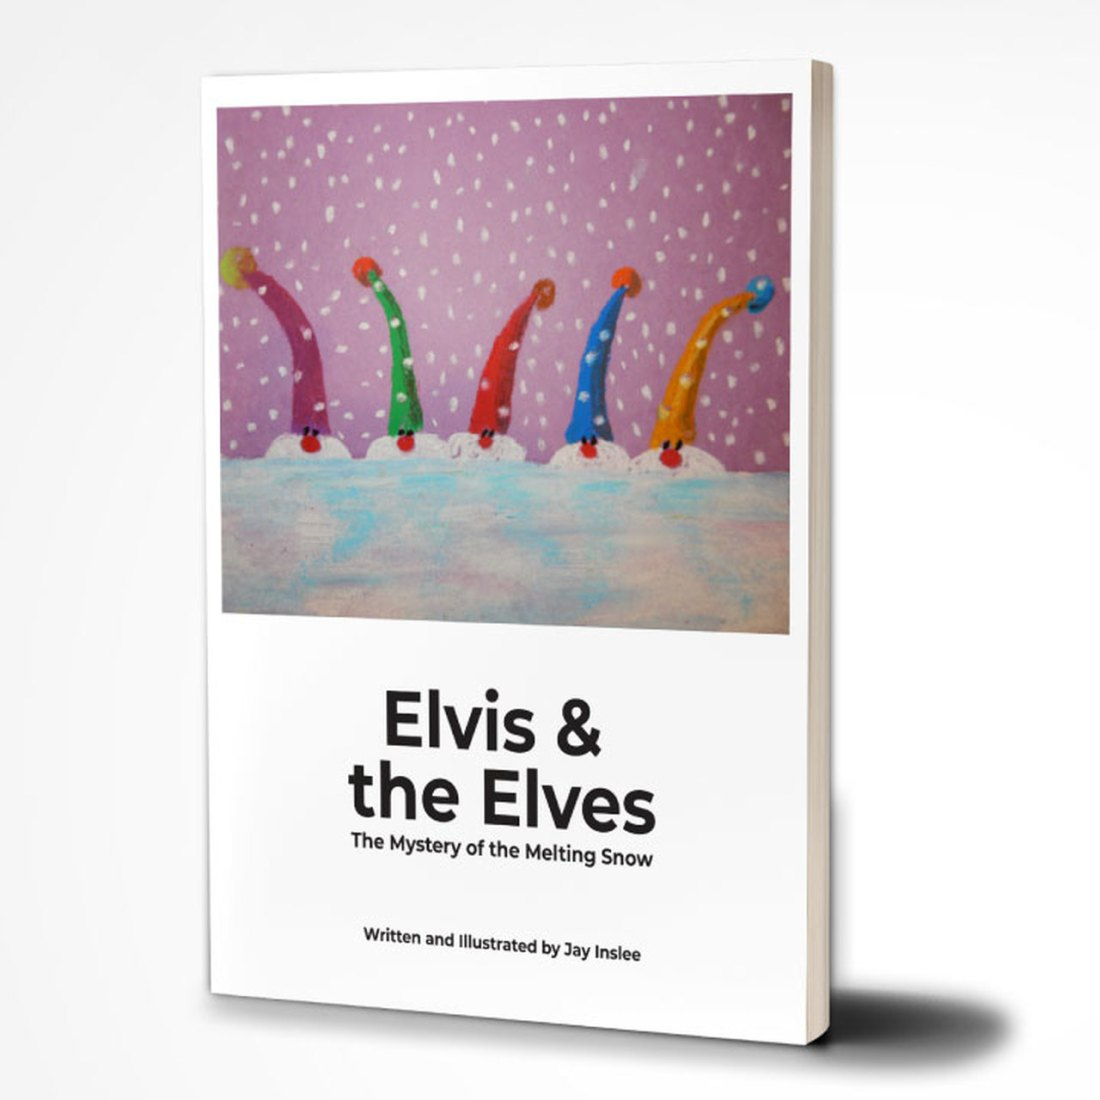 """Elvis & the Elves: The Mystery of the Melting Snow"" By Jay Inslee (jayinslee.com)"